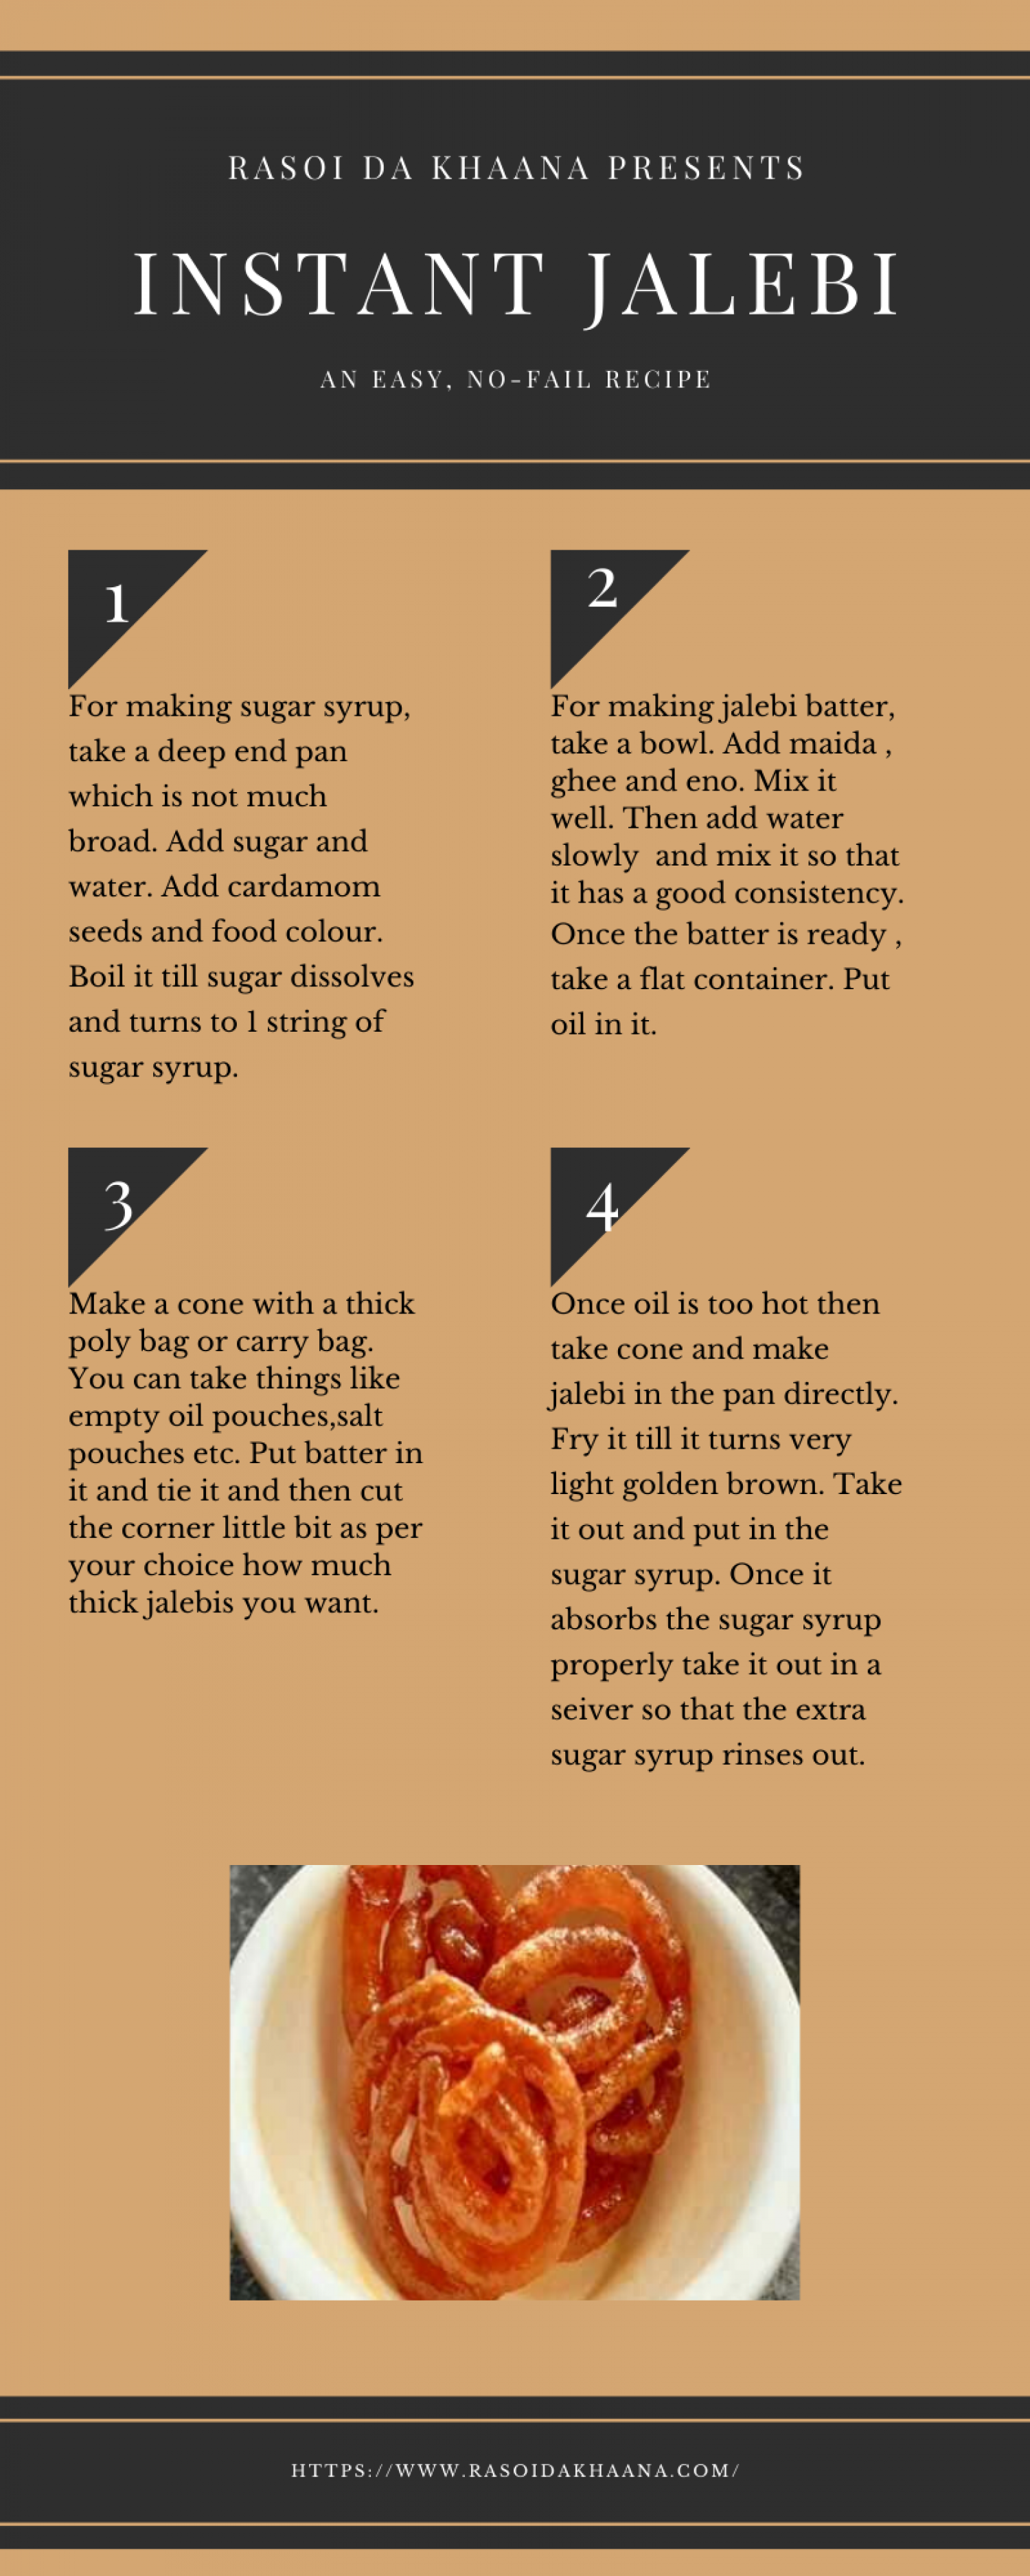 How to Make Instant Jalebi Infographic